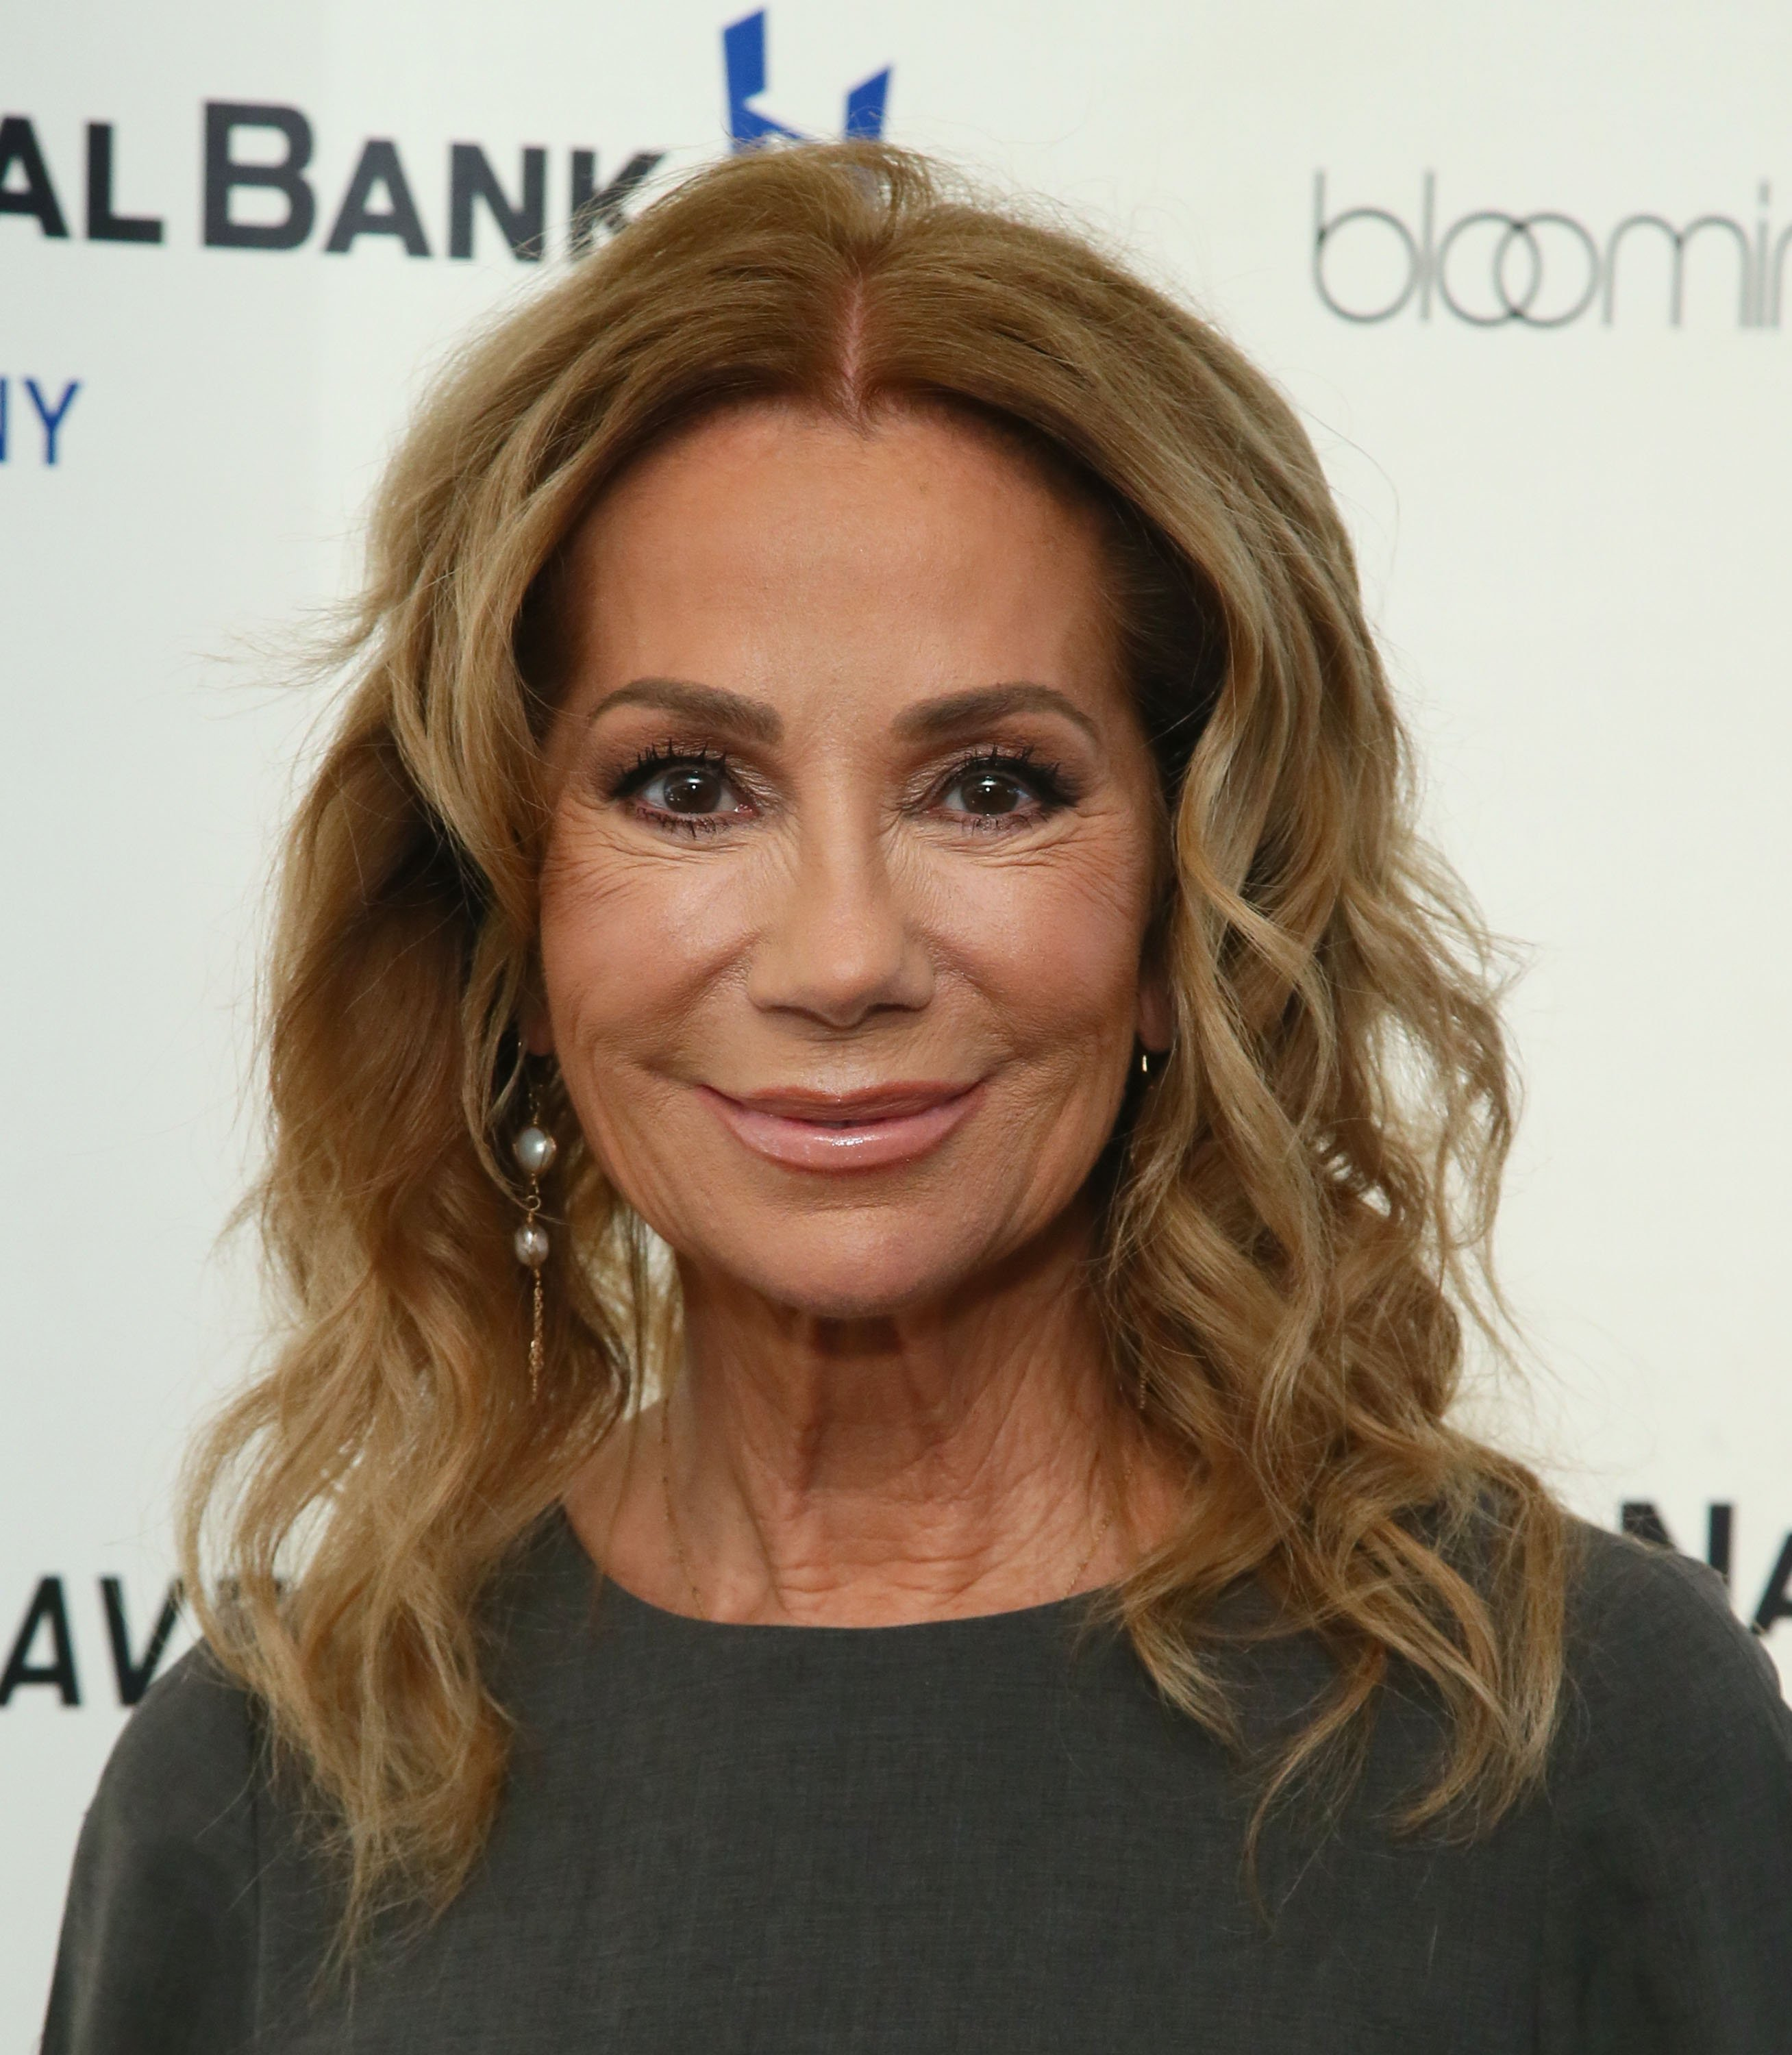 Kathie Lee Gifford attends Citymeals' 32nd power lunch for women at The Rainbow Room on November 14, 2018, in New York City. | Source: Getty Images.